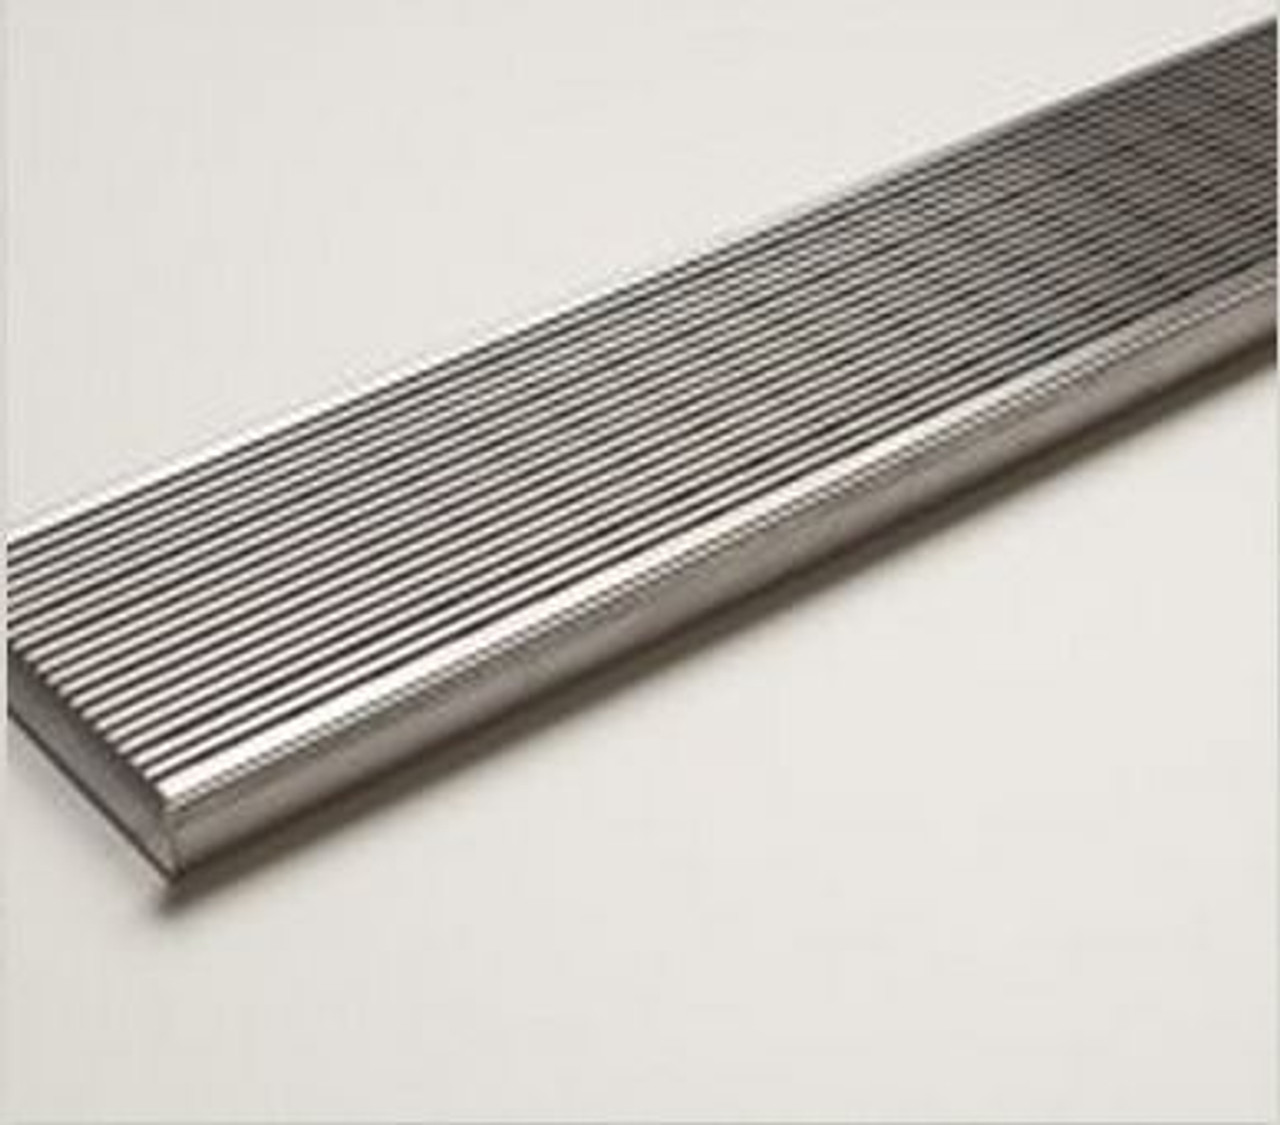 100ARIC20-1200 Stormtech Stainless Steel Grate